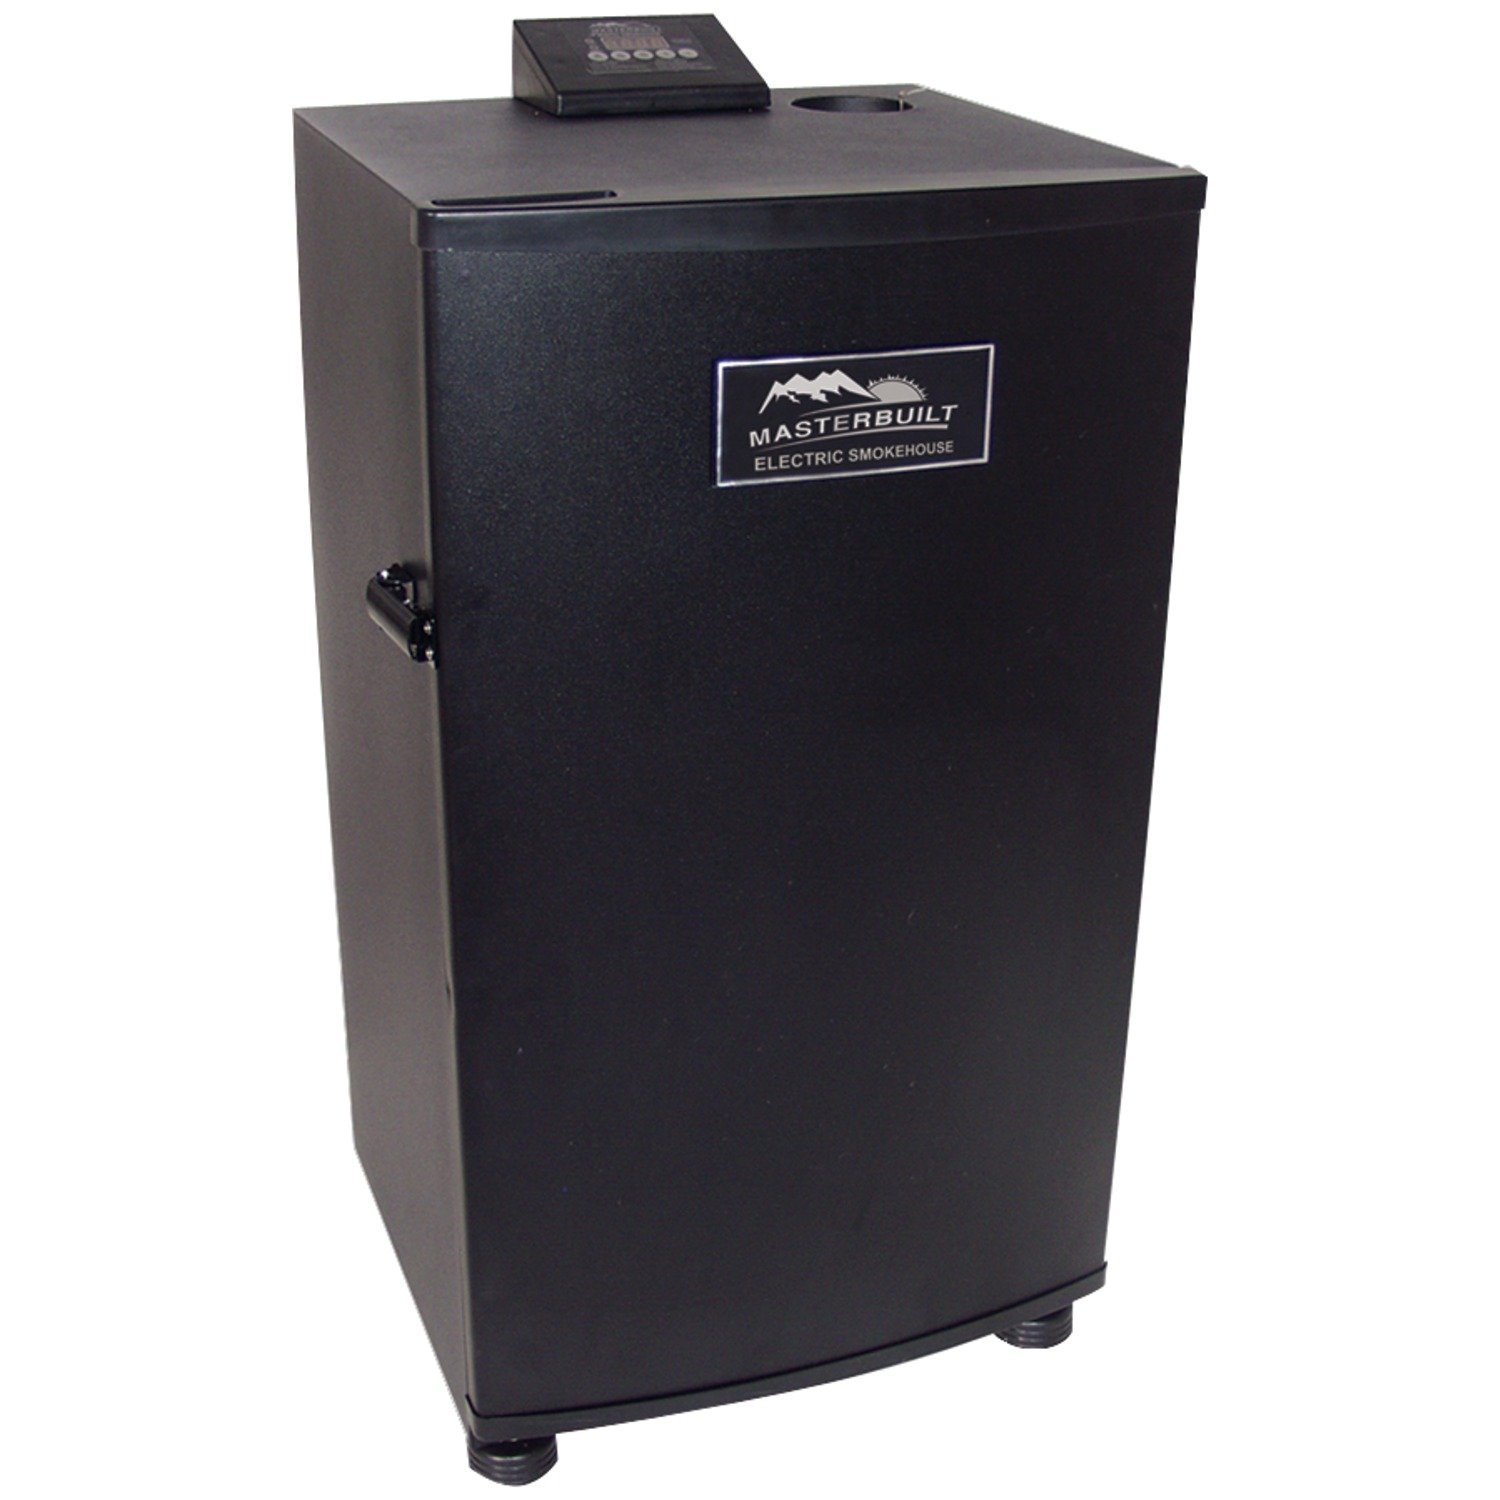 Masterbuilt 20070910 Electric Smoker